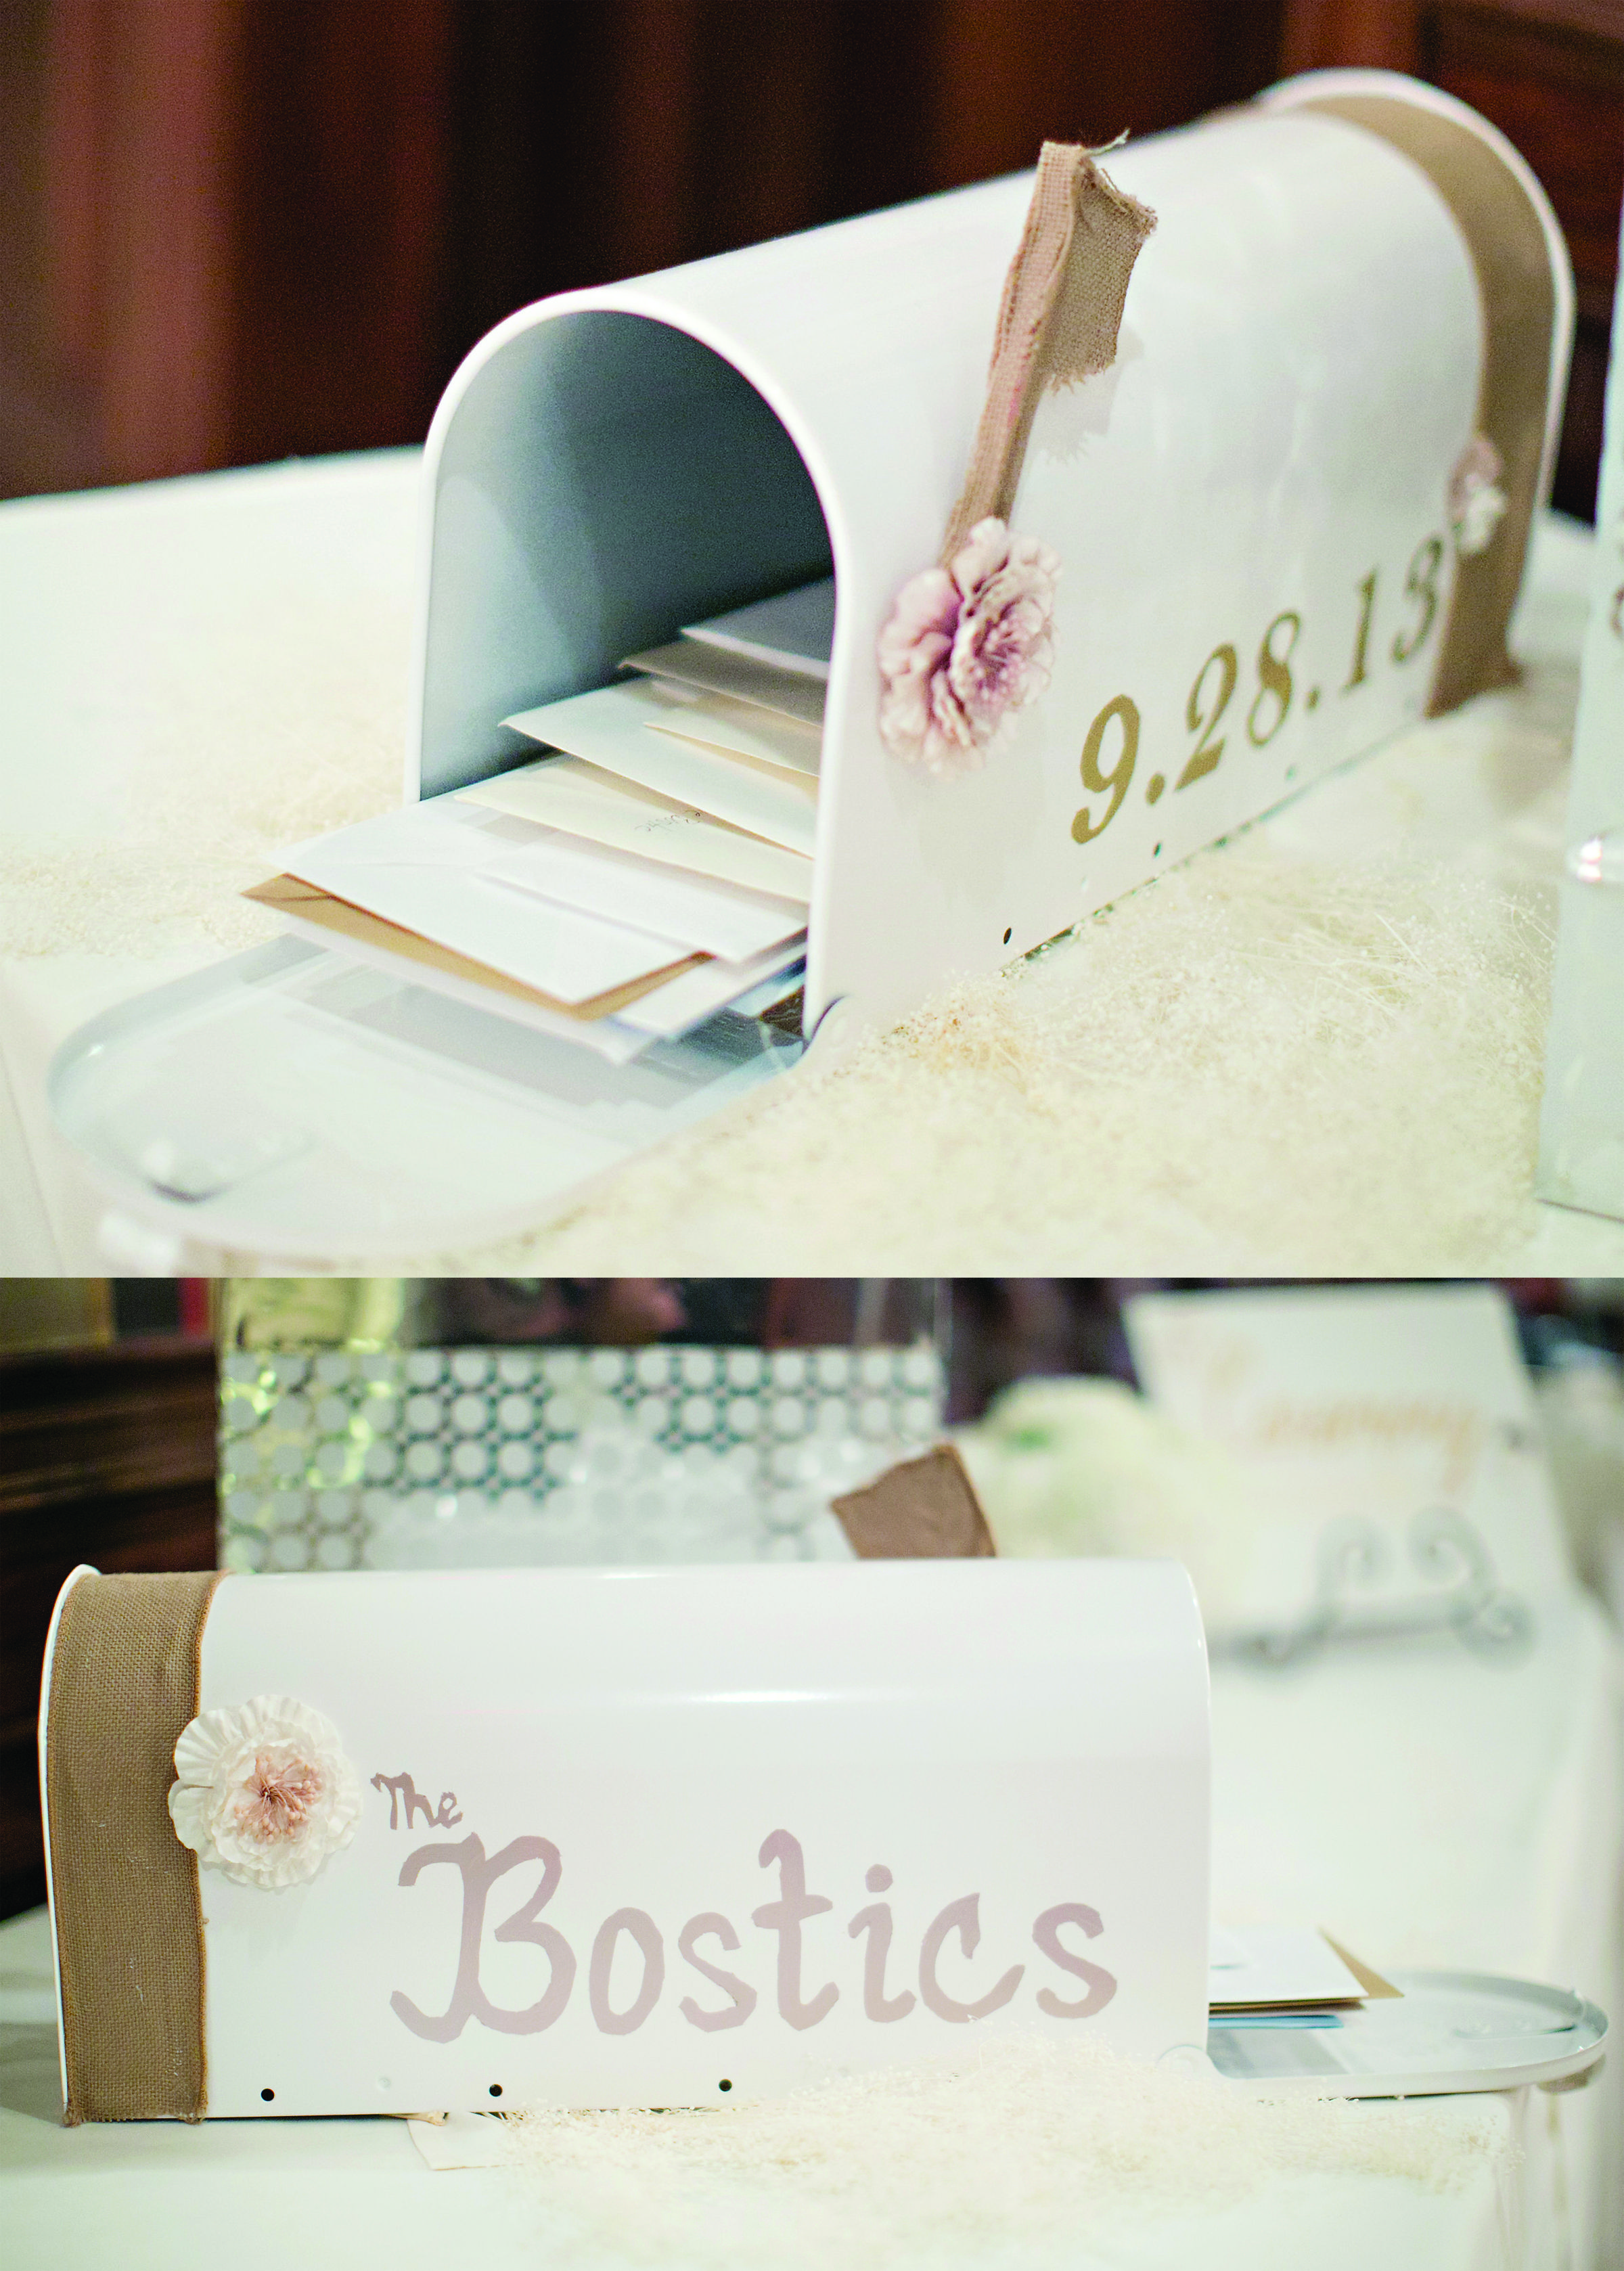 Diy Mailbox For Wedding Cards Buy A Plain White Mailbox Cut Out